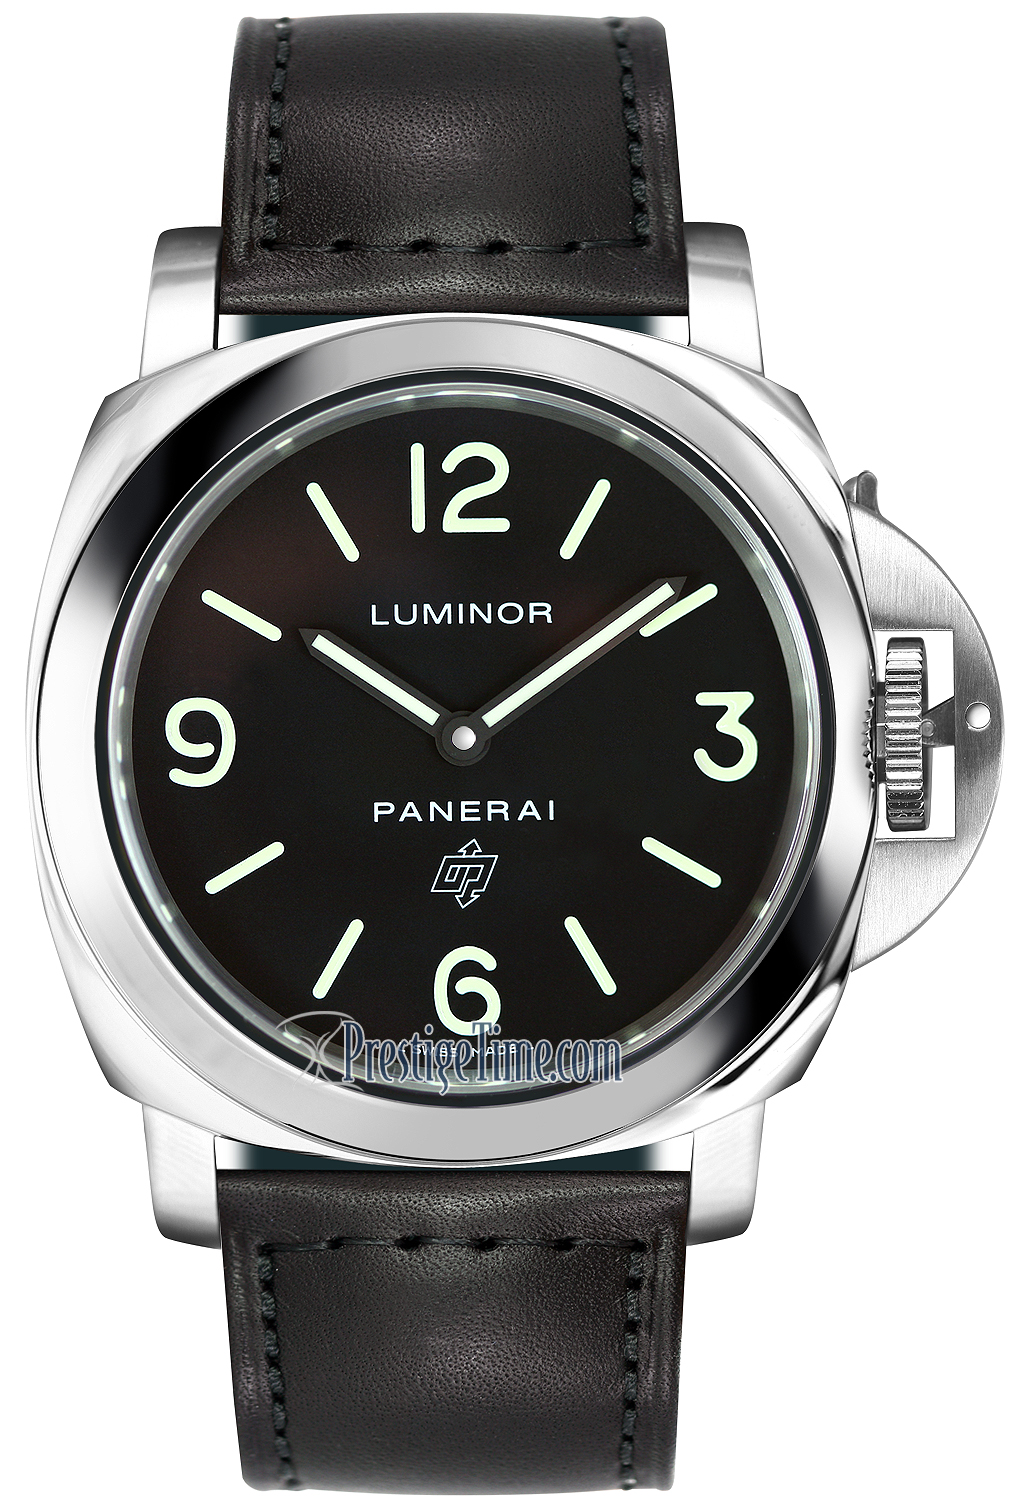 radiomir front forever most collectors paneristi watches news days panerai wanted by